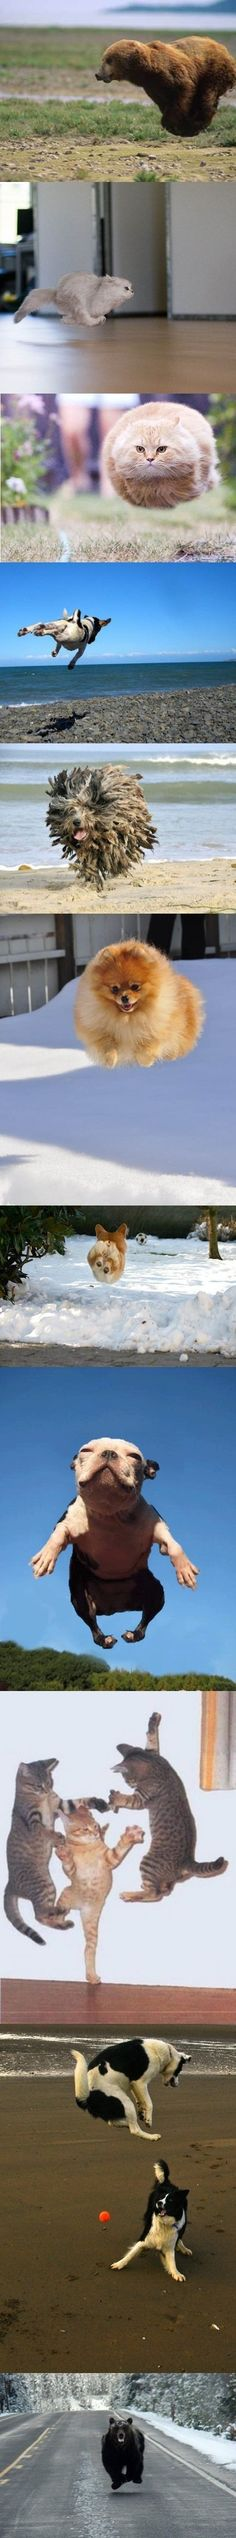 Airborne Pets & Animals. #pets #animals #funnypets @Jenna Davey the 5th one down looks like the scary dogs from willow...